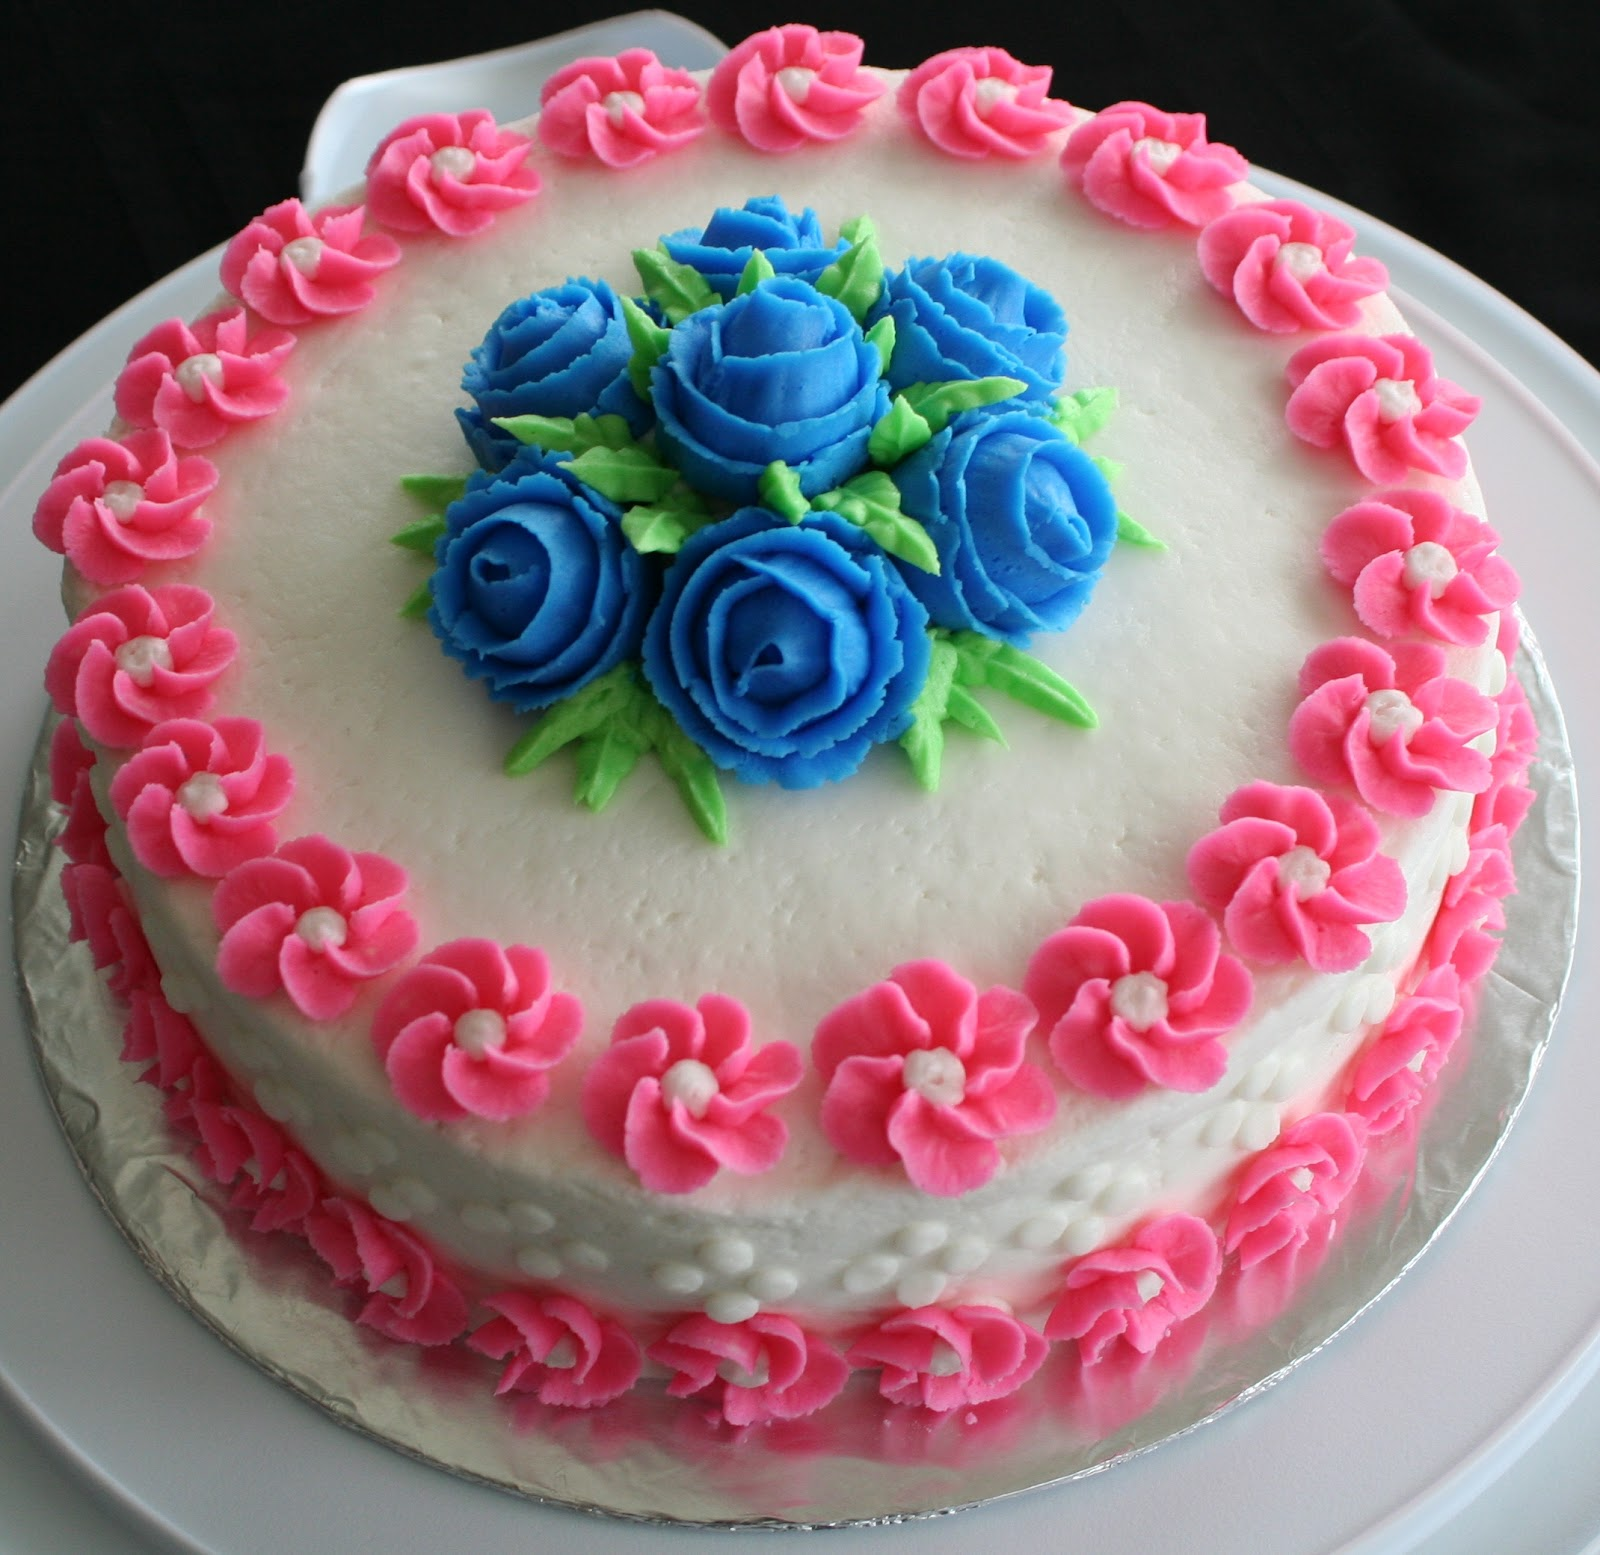 Cake Decoration Buttercream : Julia s Baking Adventures: Wilton Course 1: Decorating ...